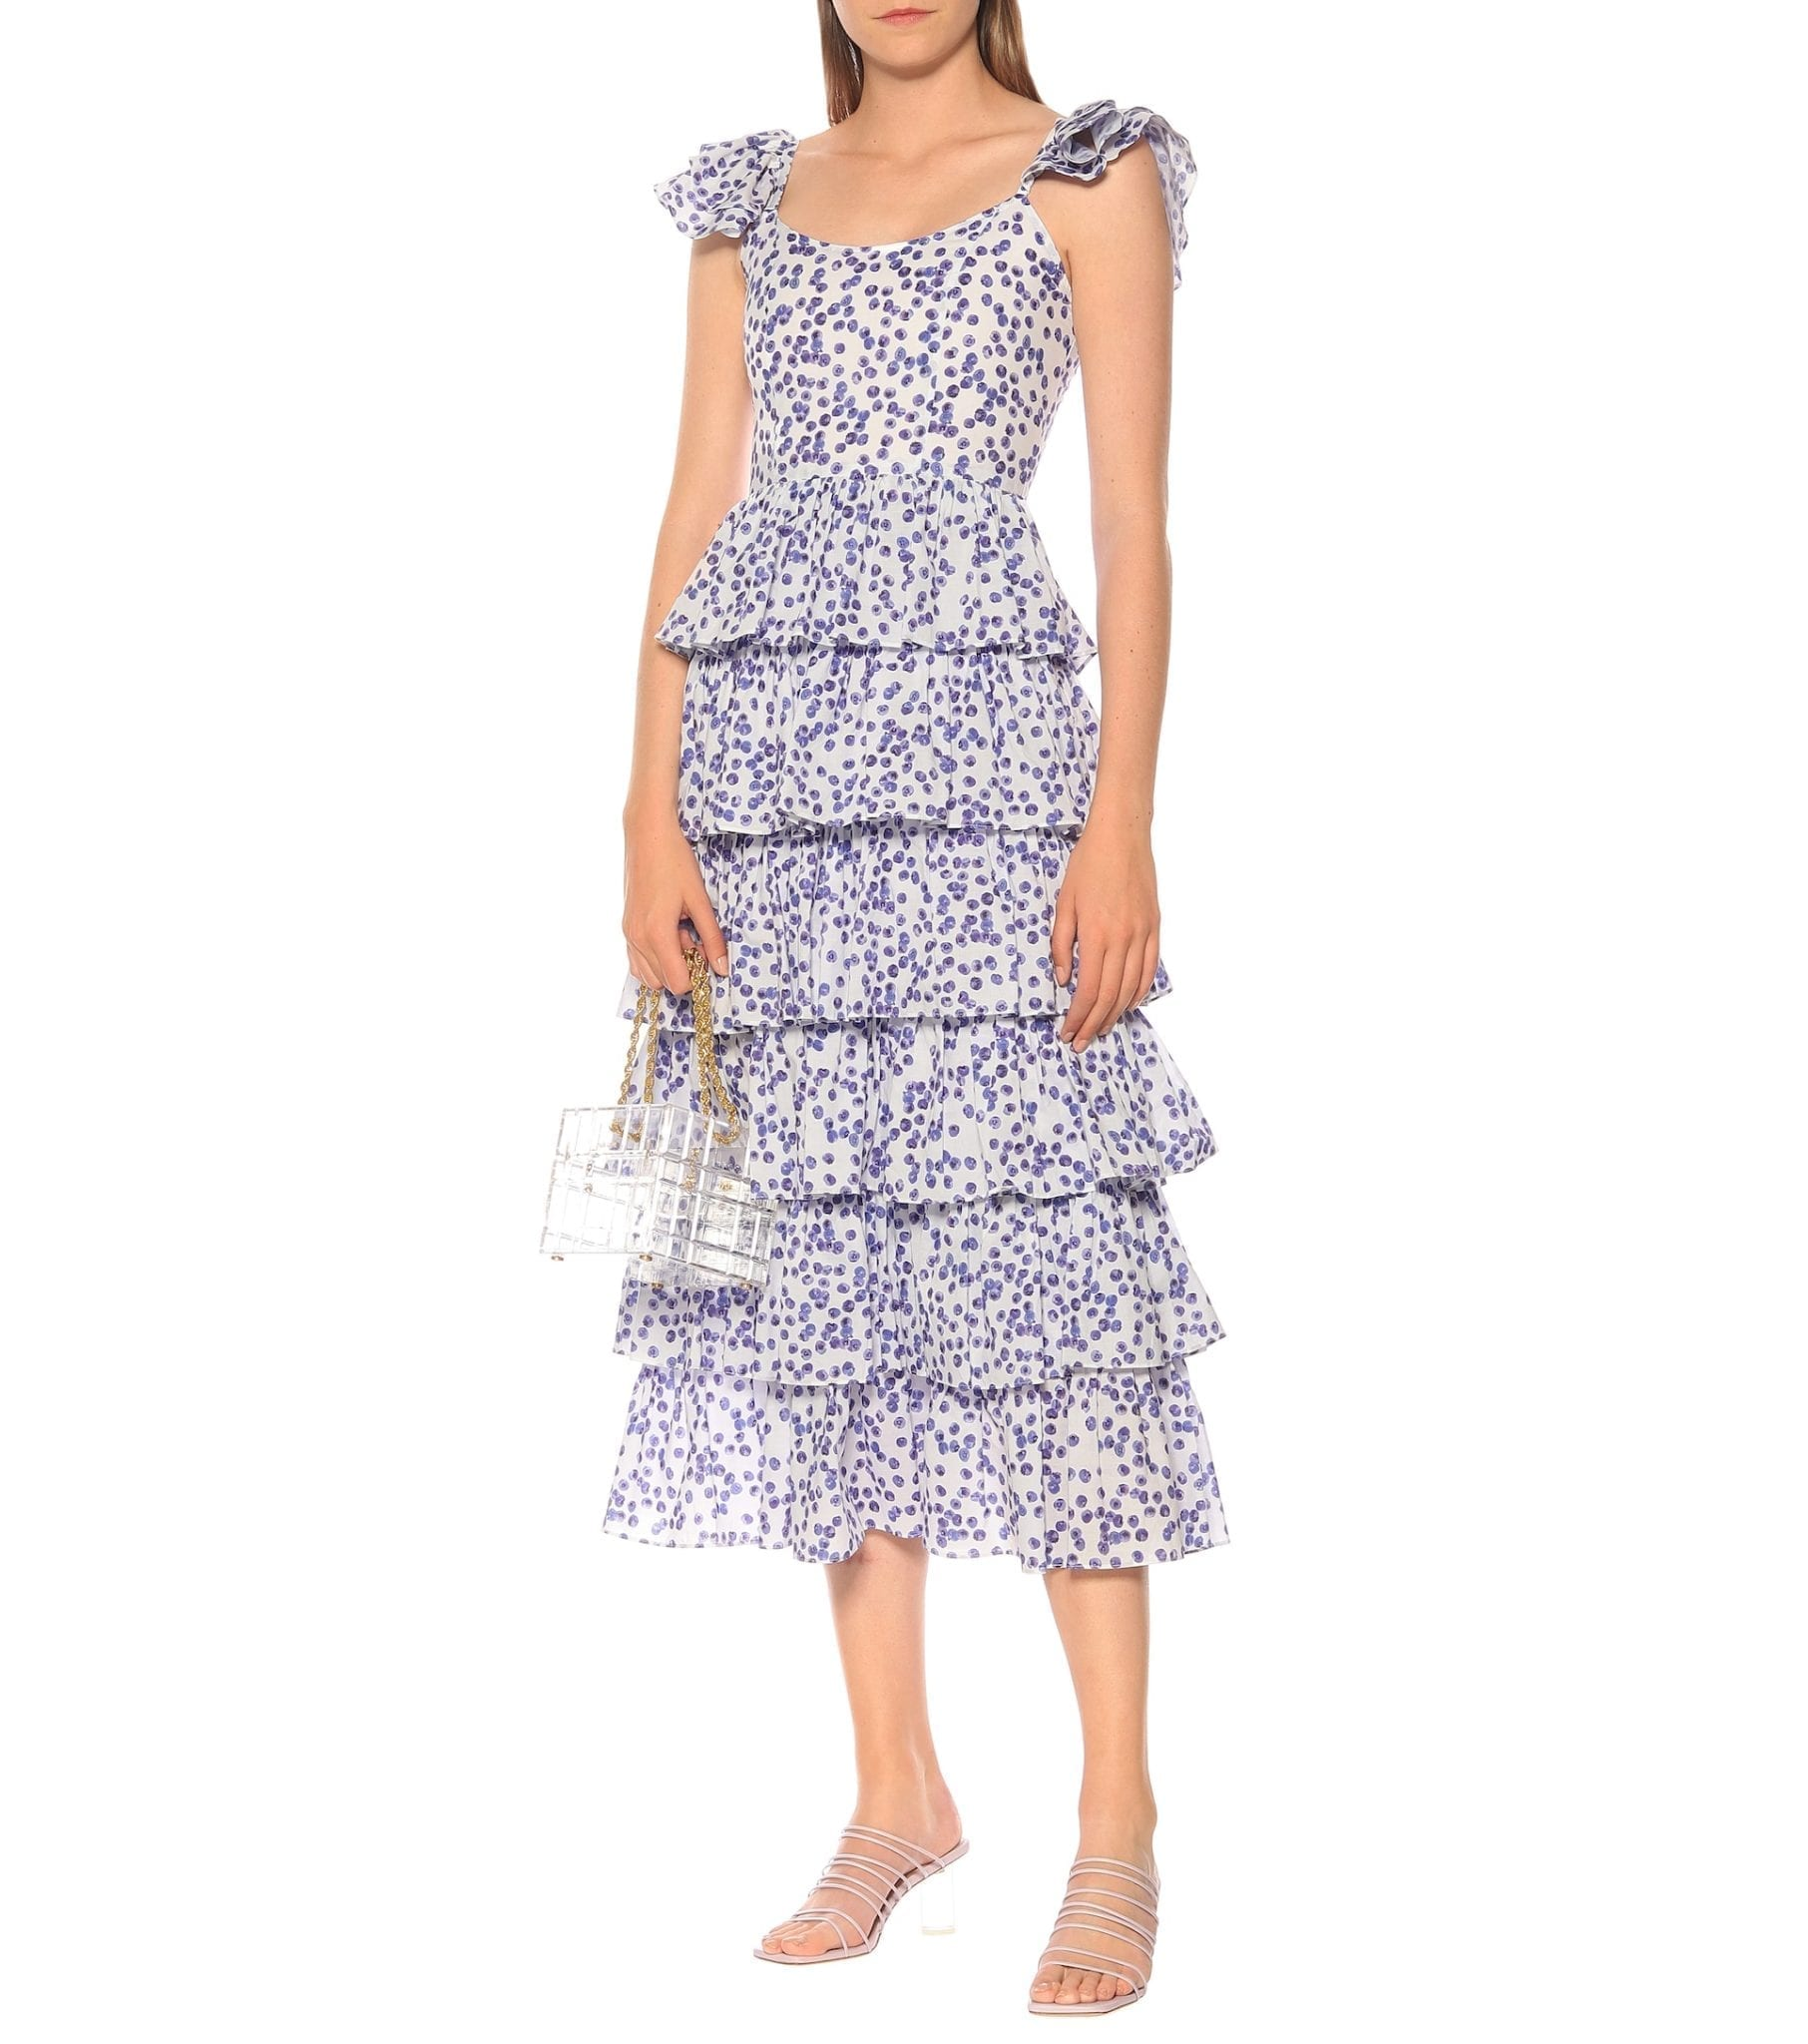 CAROLINE CONSTAS Elba Printed Cotton Midi Dress